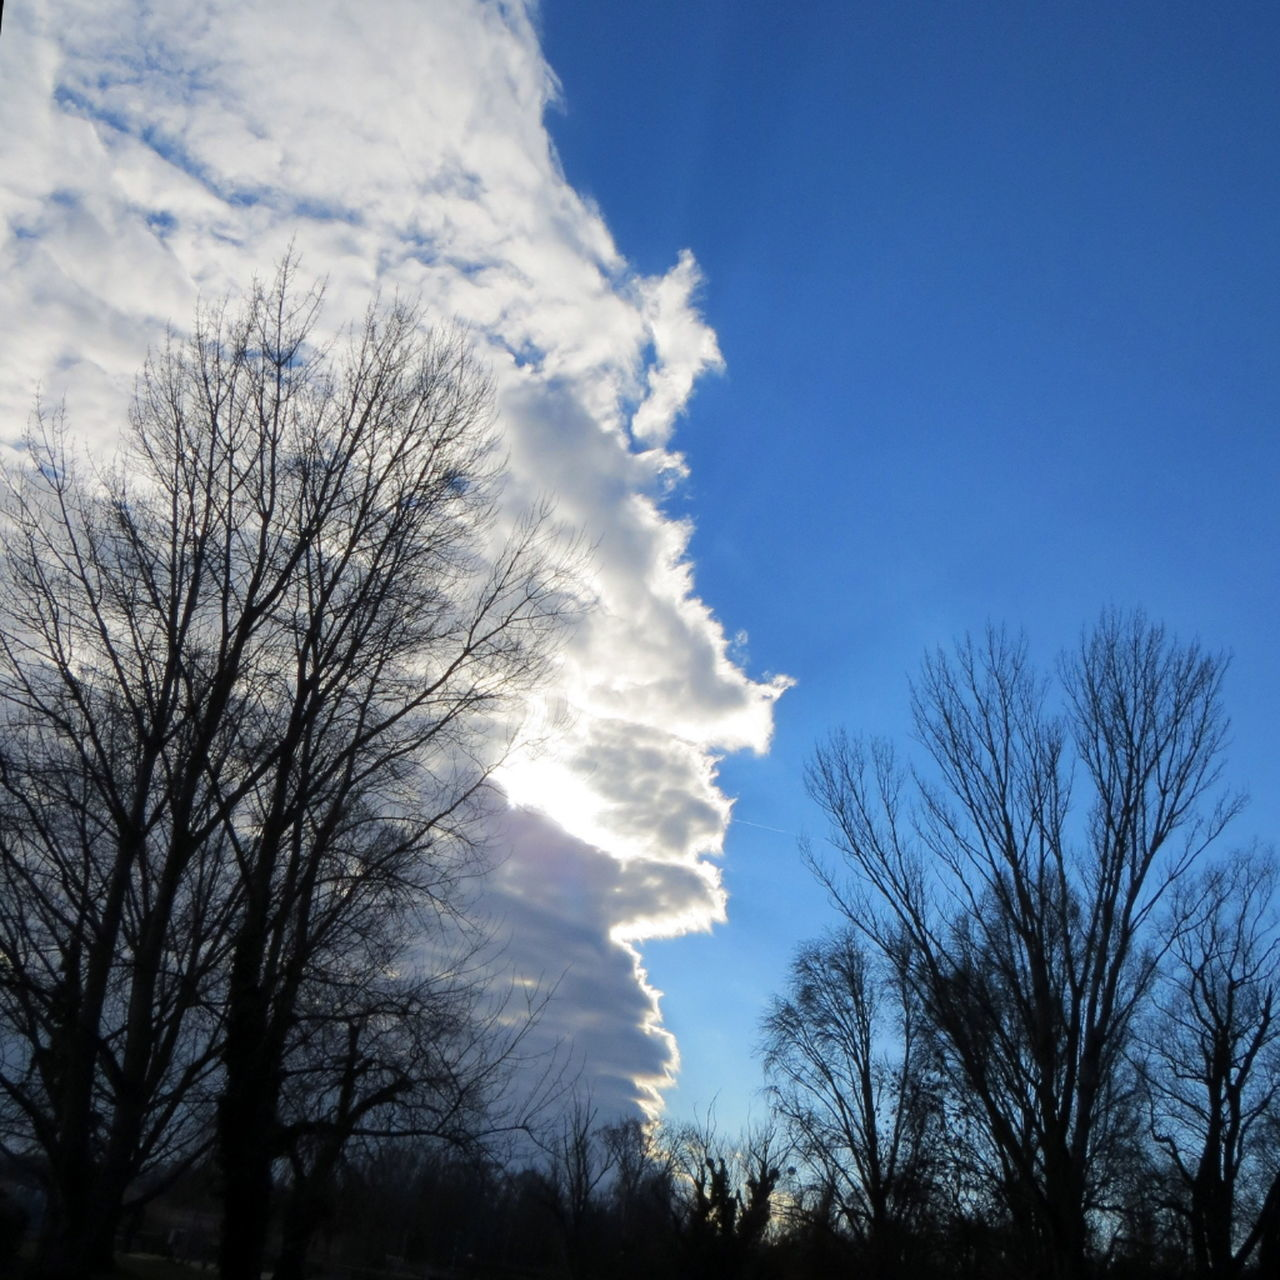 tree, bare tree, sky, low angle view, nature, beauty in nature, tranquility, outdoors, scenics, tranquil scene, no people, branch, silhouette, cloud - sky, day, blue, vapor trail